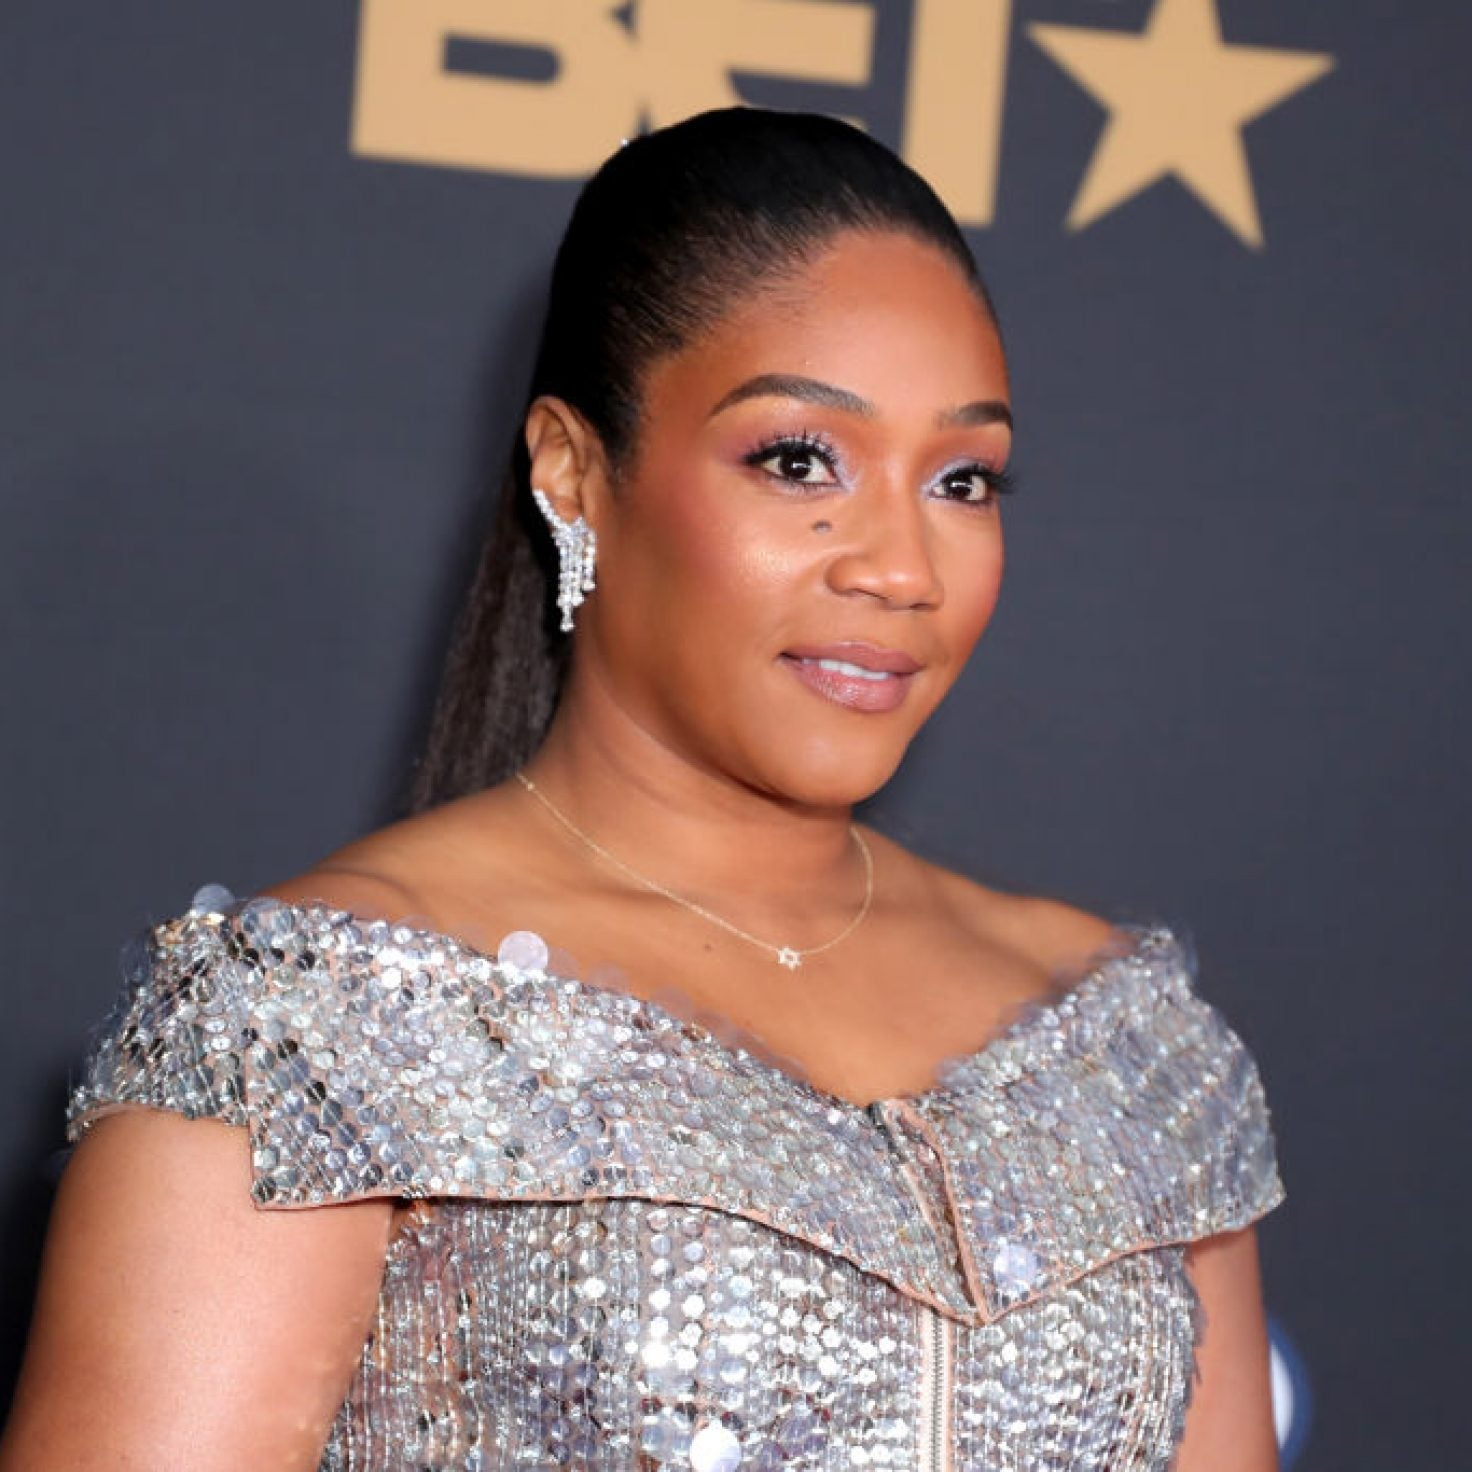 This Is Why Tiffany Haddish Turned Down A Role In Chris Rock's 'Top Five'